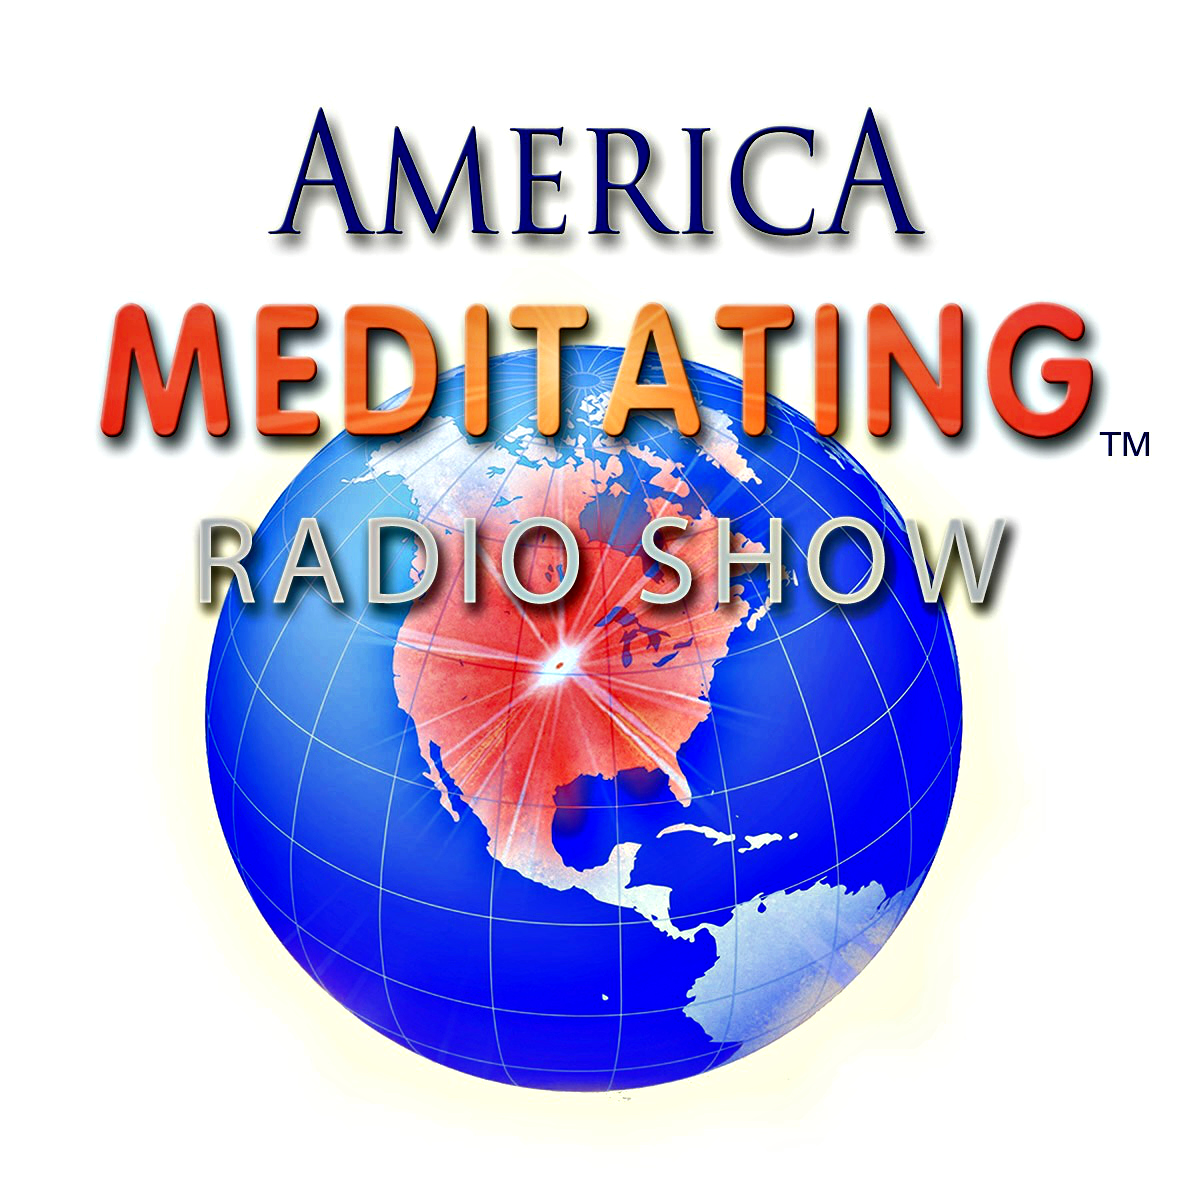 The America Meditating Radio Show, hosted by Sister Jenna provides listeners with inspiring ways to combat challenges that we encounter along the journey of life.